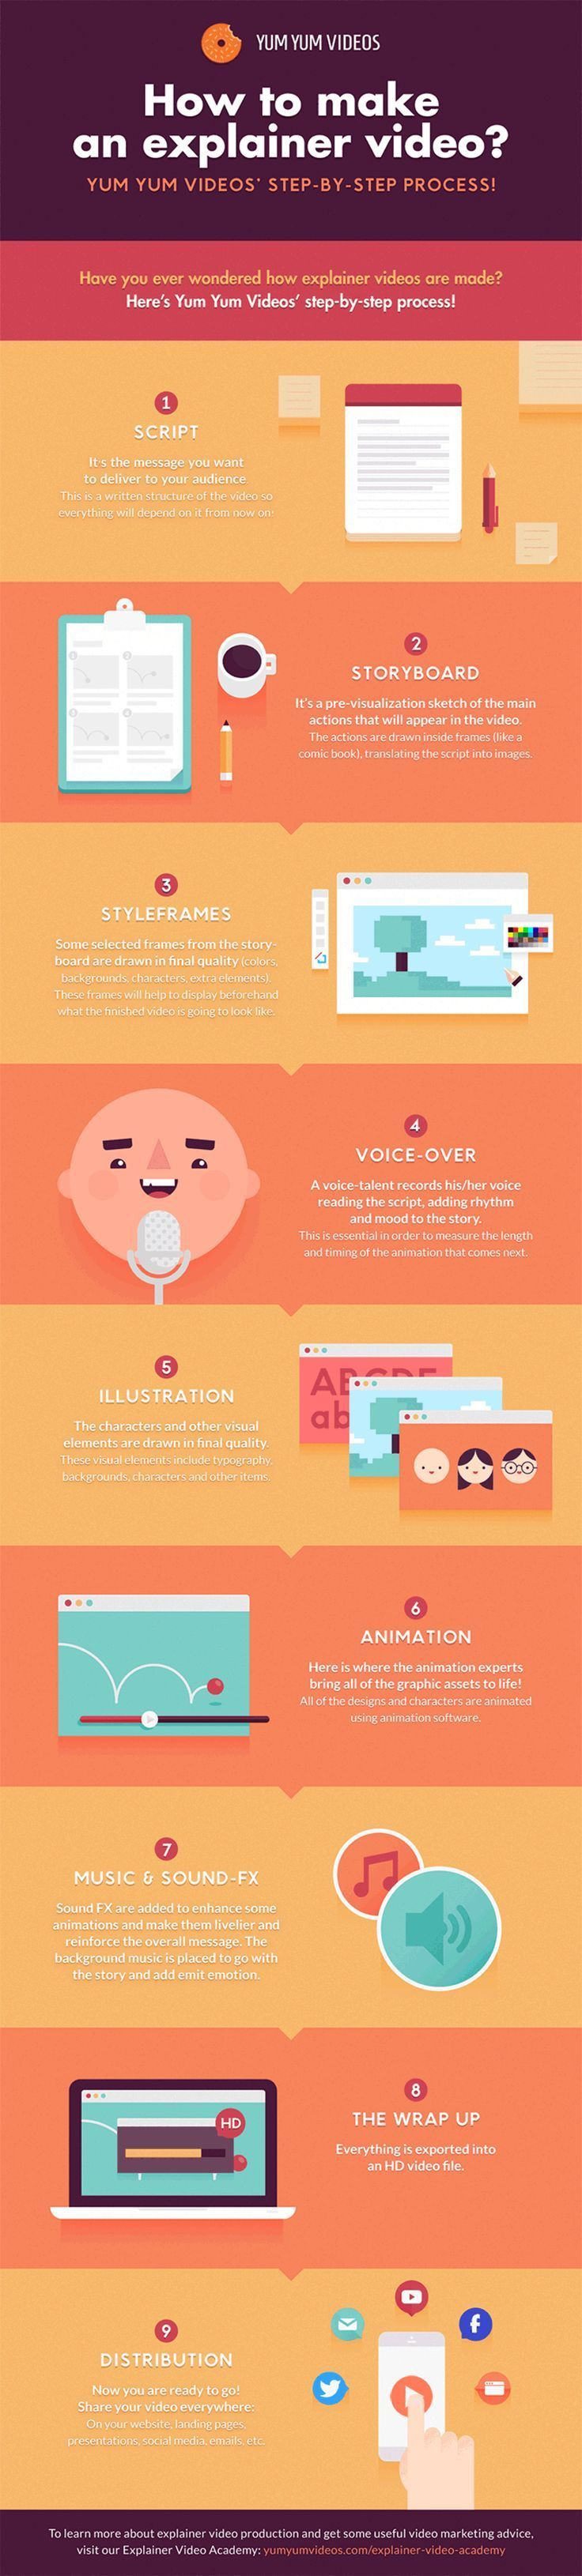 #infographic HOW TO MAKE AN ANIMATED EXPLAINER VIDEO STEP-BY-STEP via /angela4design/